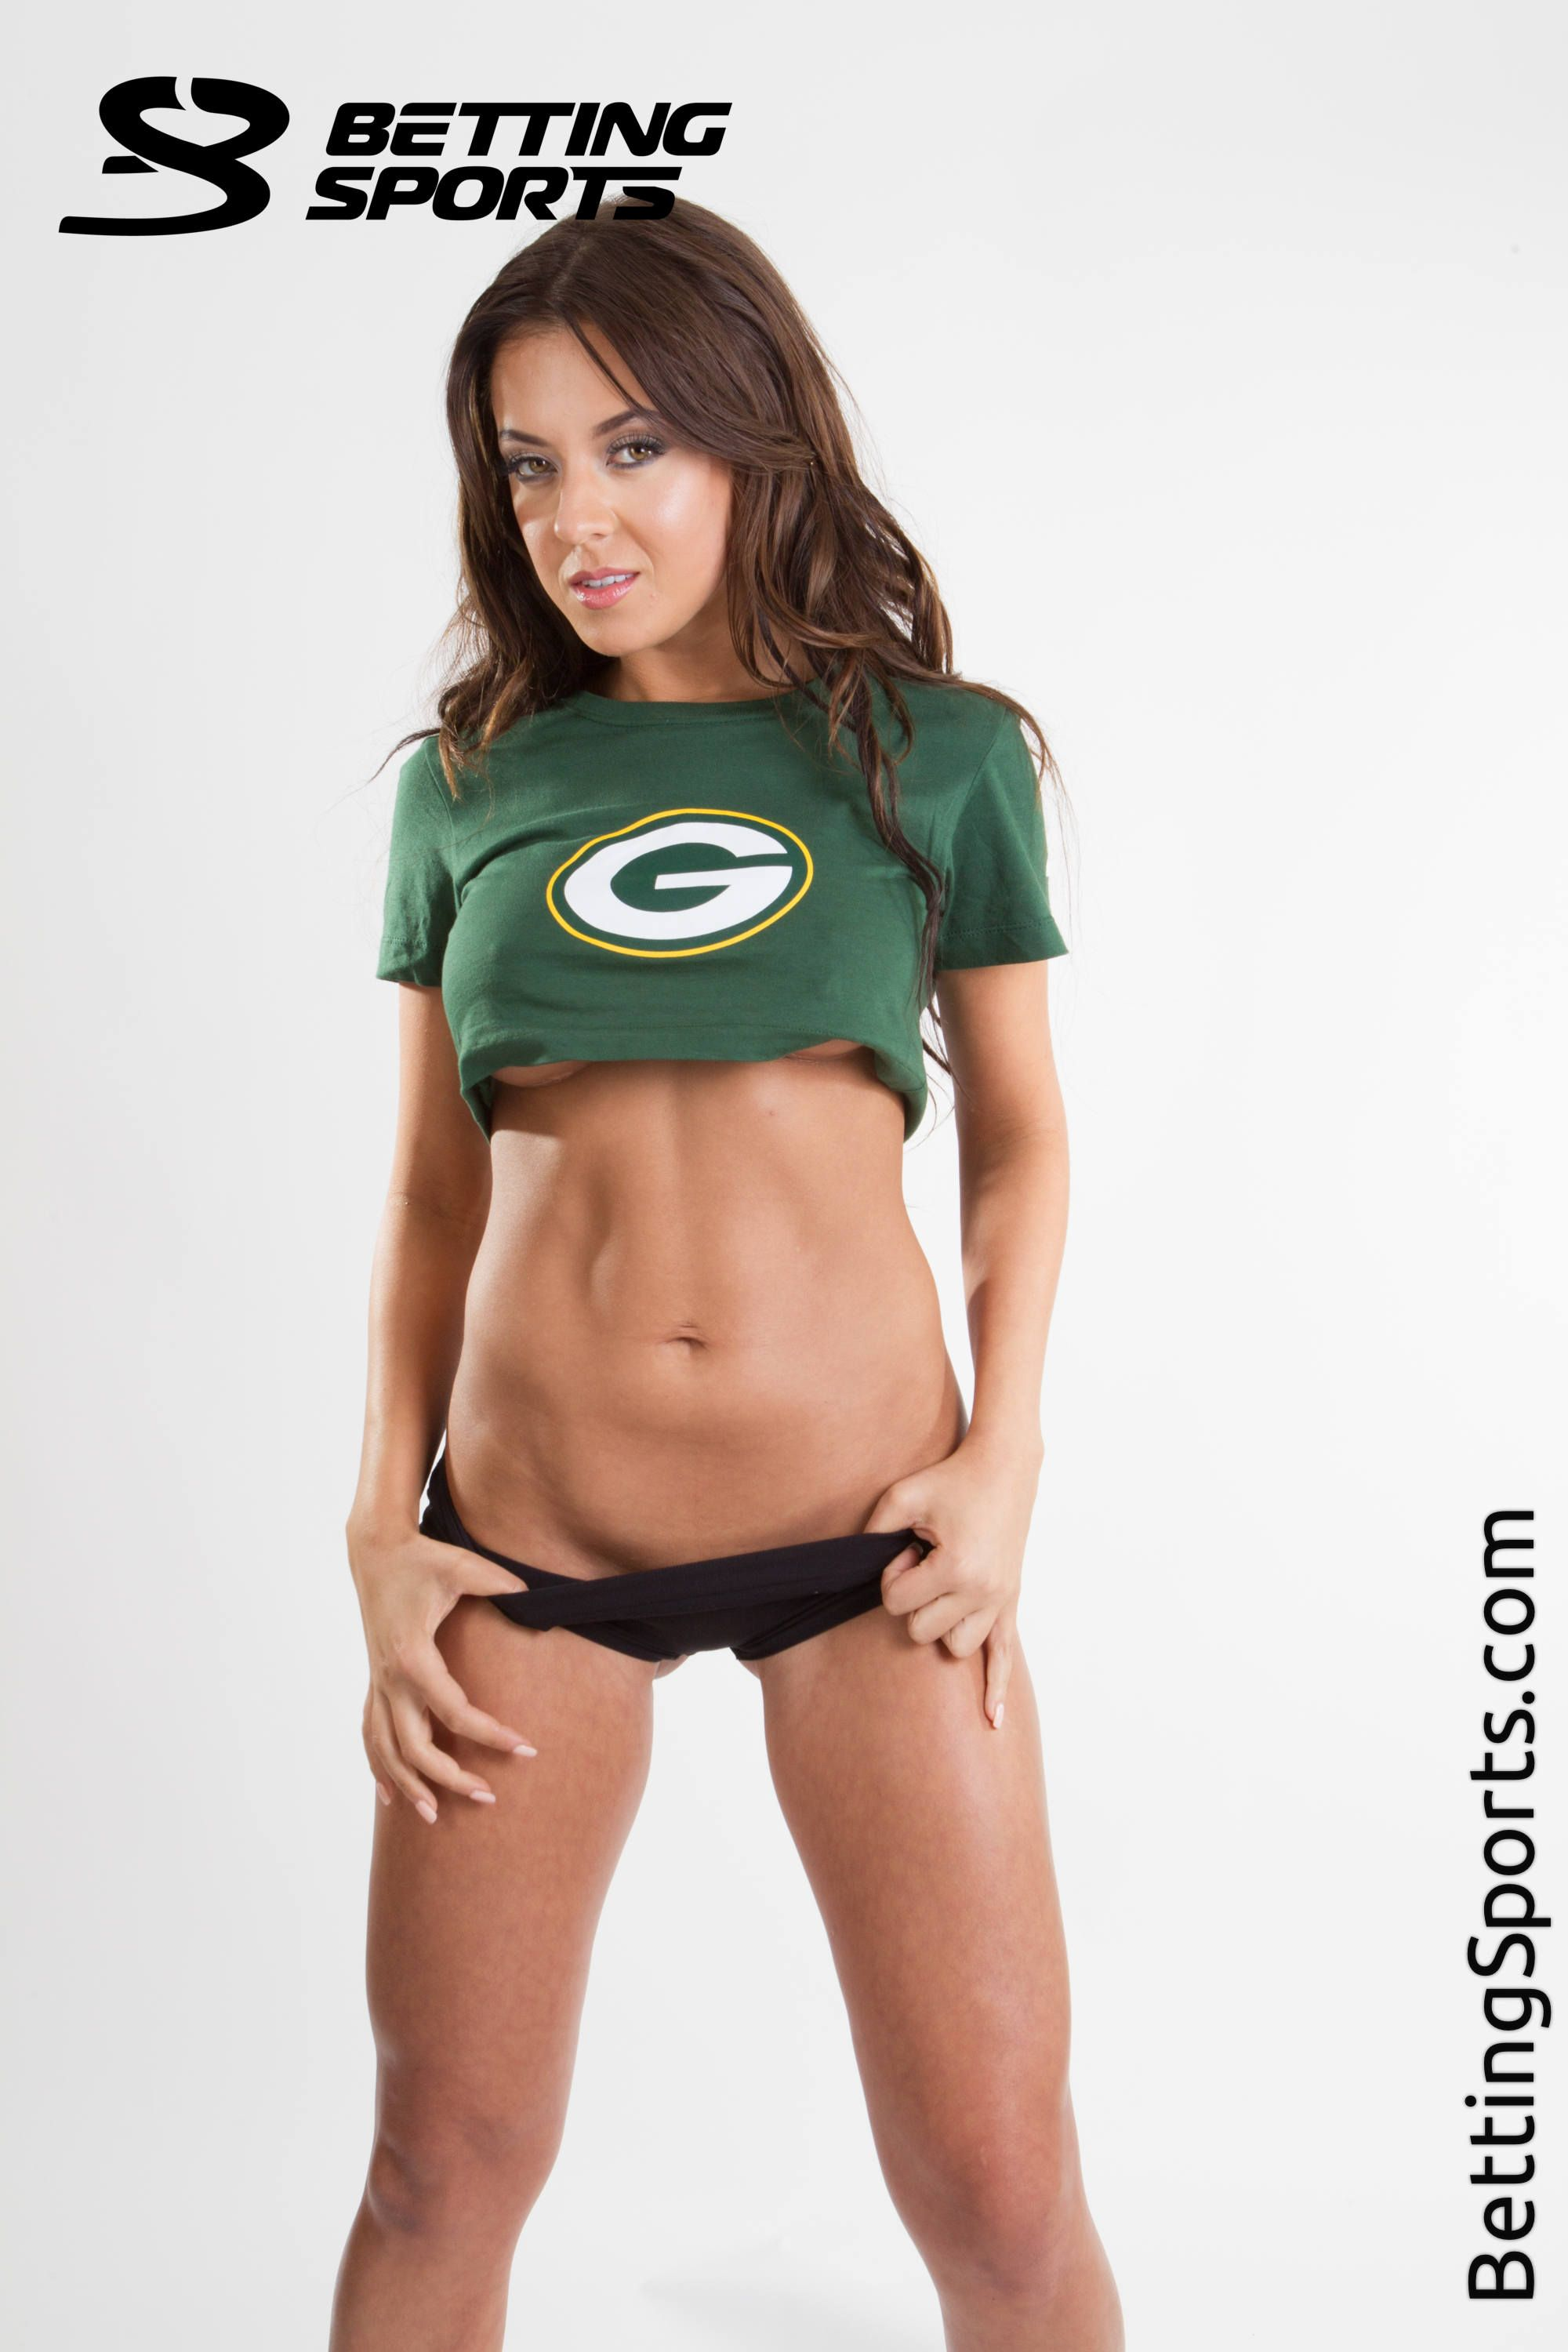 green-bay-packers-girls-nude-porno